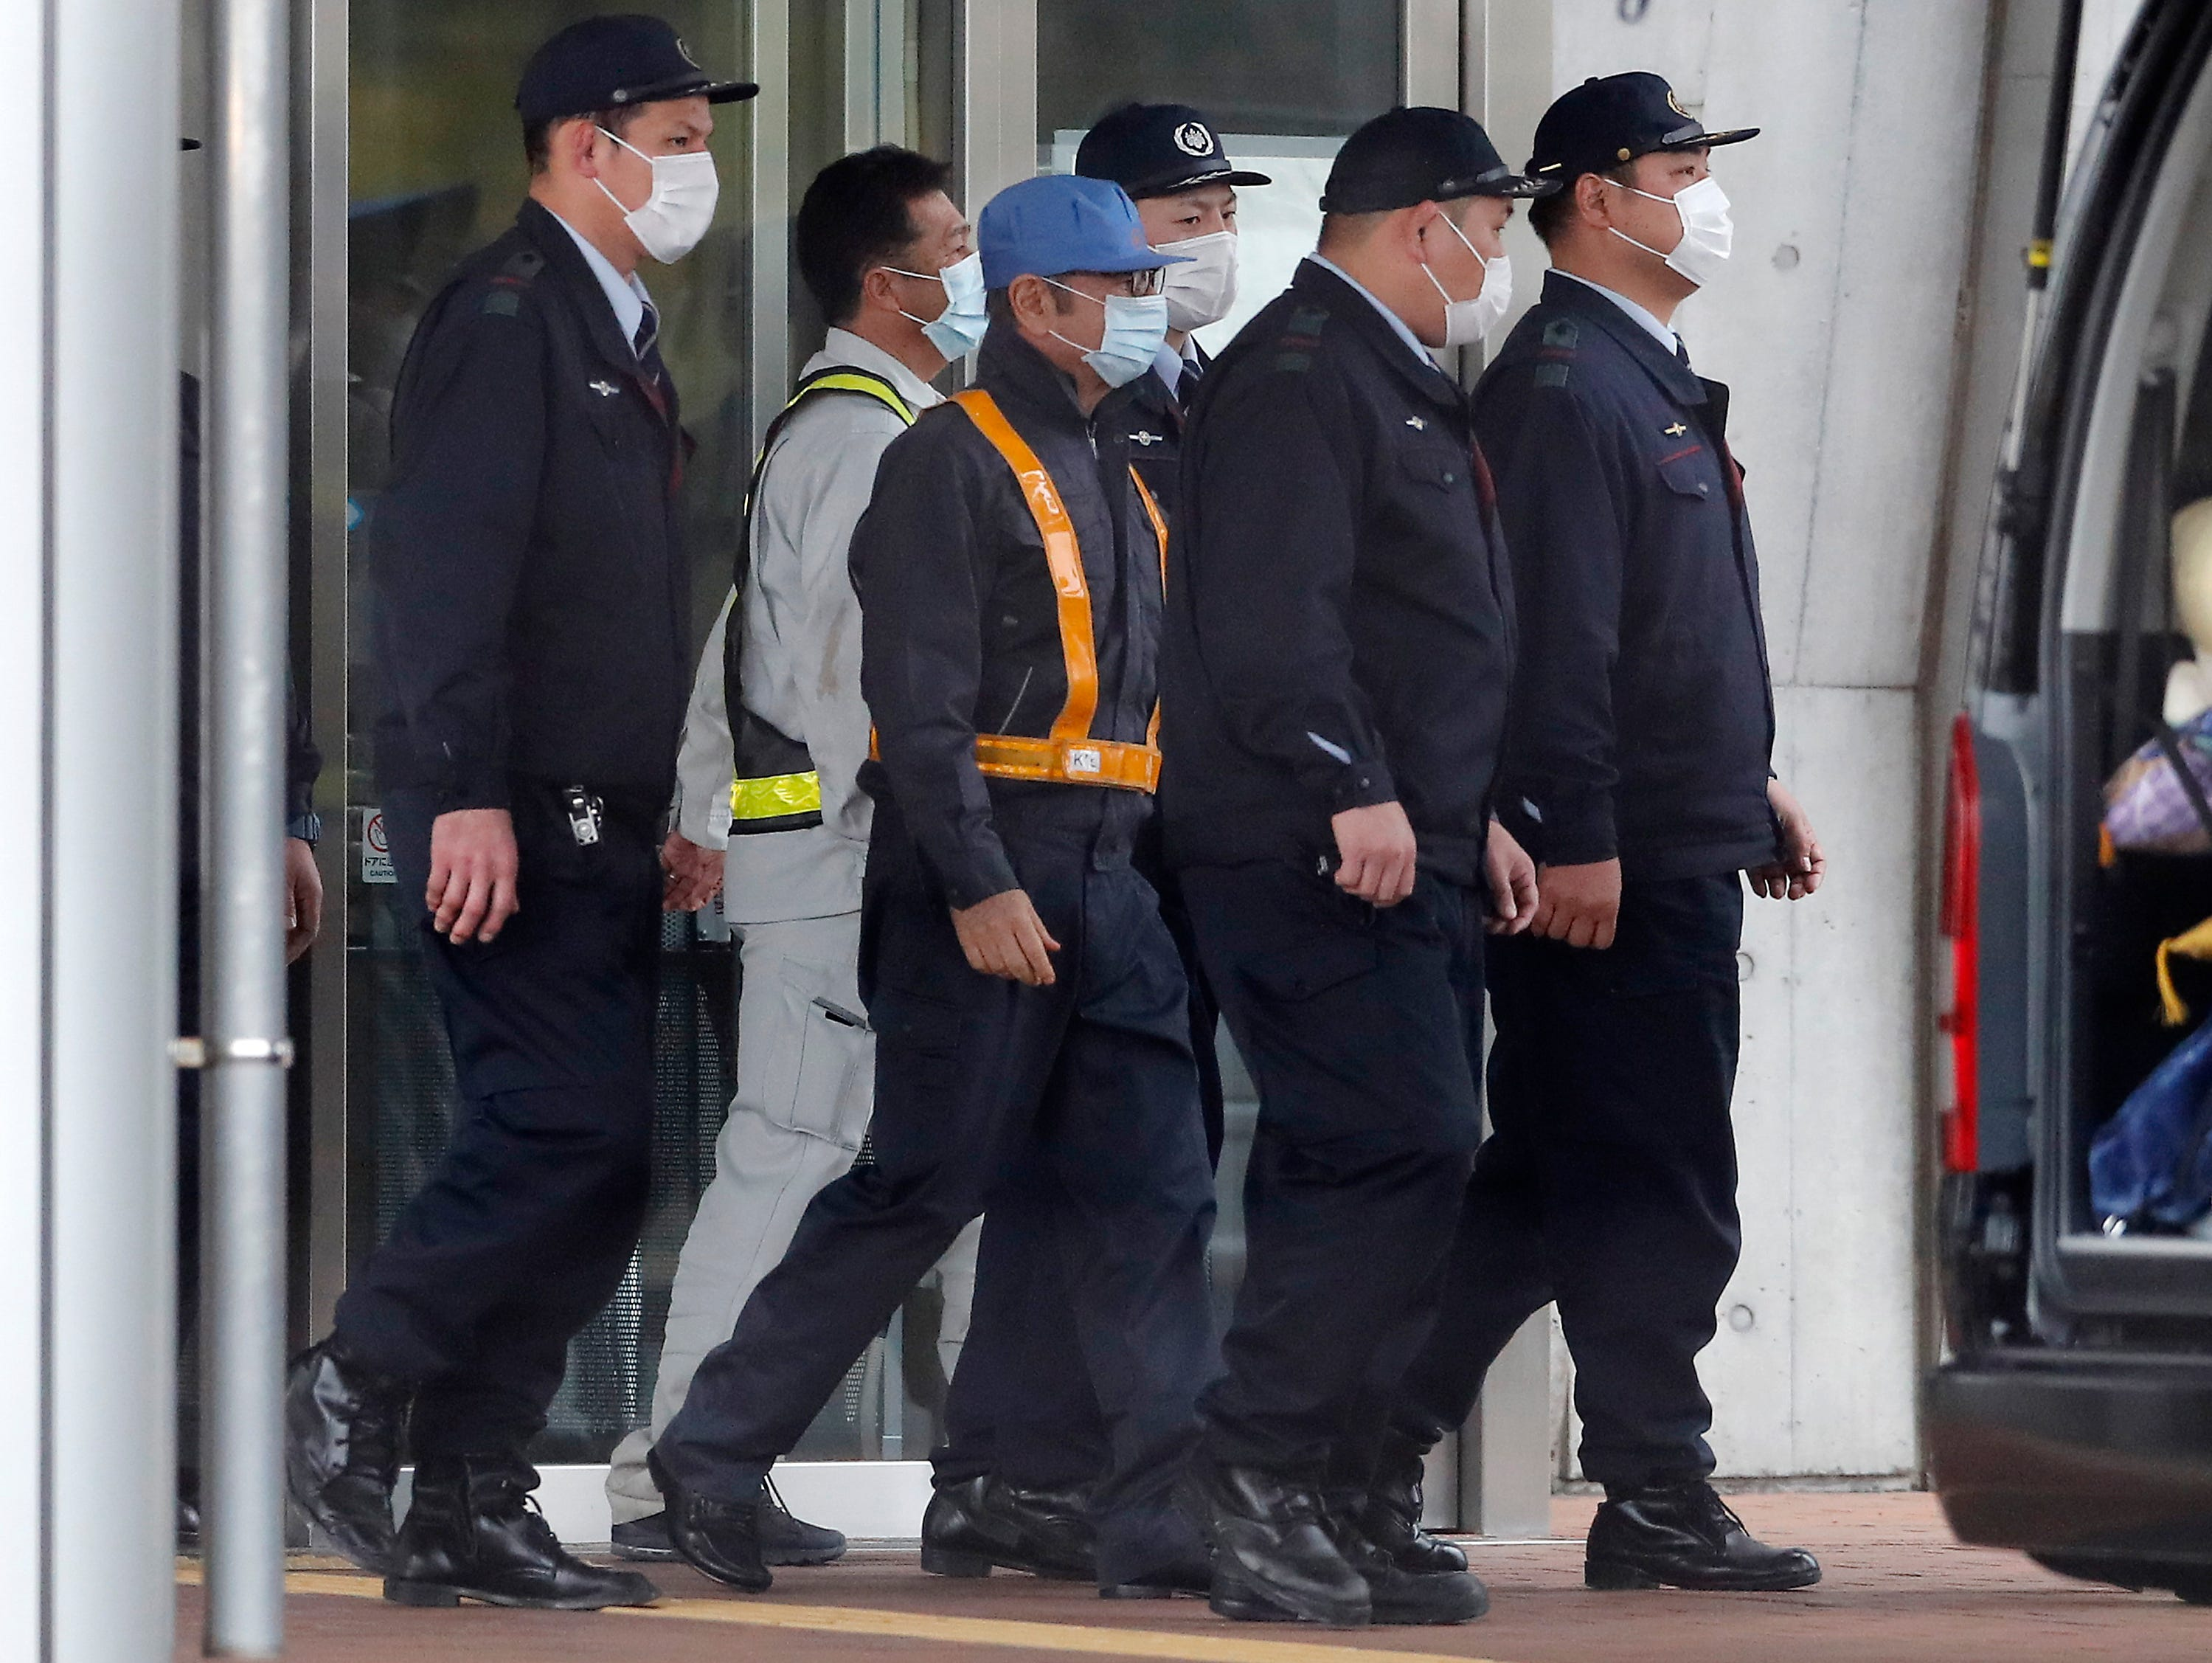 A masked man, center with blue cap, believed to be former Nissan Chairman Carlos Ghosn, walks out with security guards from Tokyo Detention Center in Tokyo Wednesday, March 6, 2019, after posting 1 billion yen ($8.9 million) in bail once an appeal by prosecutors against his release was rejected. (AP Photo/Eugene Hoshiko)